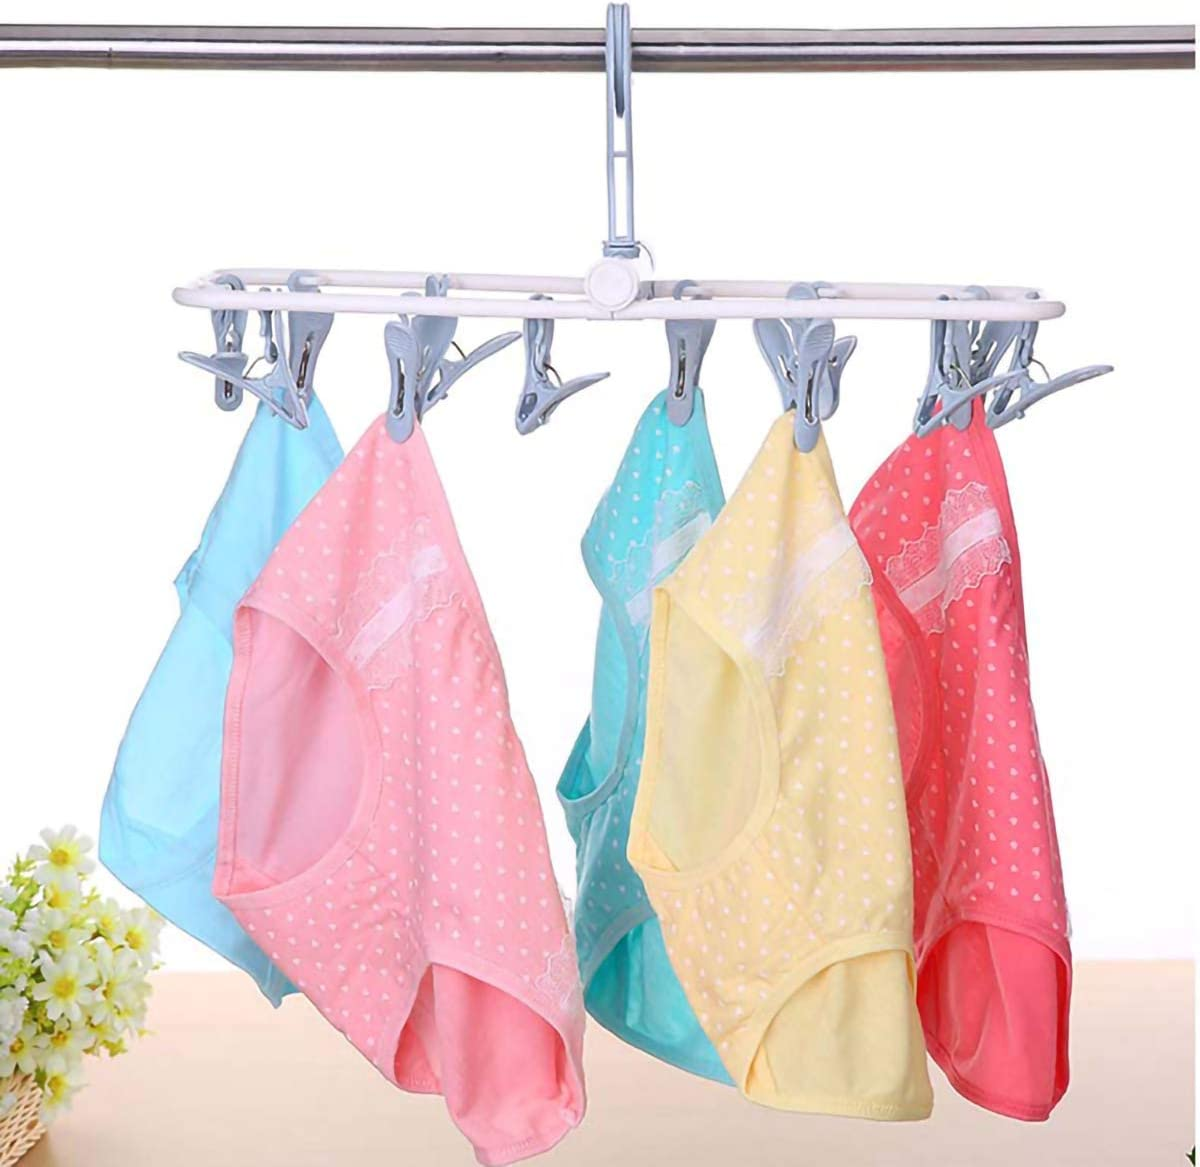 Bingo Trade Drying Rack Foldable Indoor Sock Dryer-Keep Smaller Laundry Items Together When Drying for Socks Khaki Bras Baby Clothes, Underwear